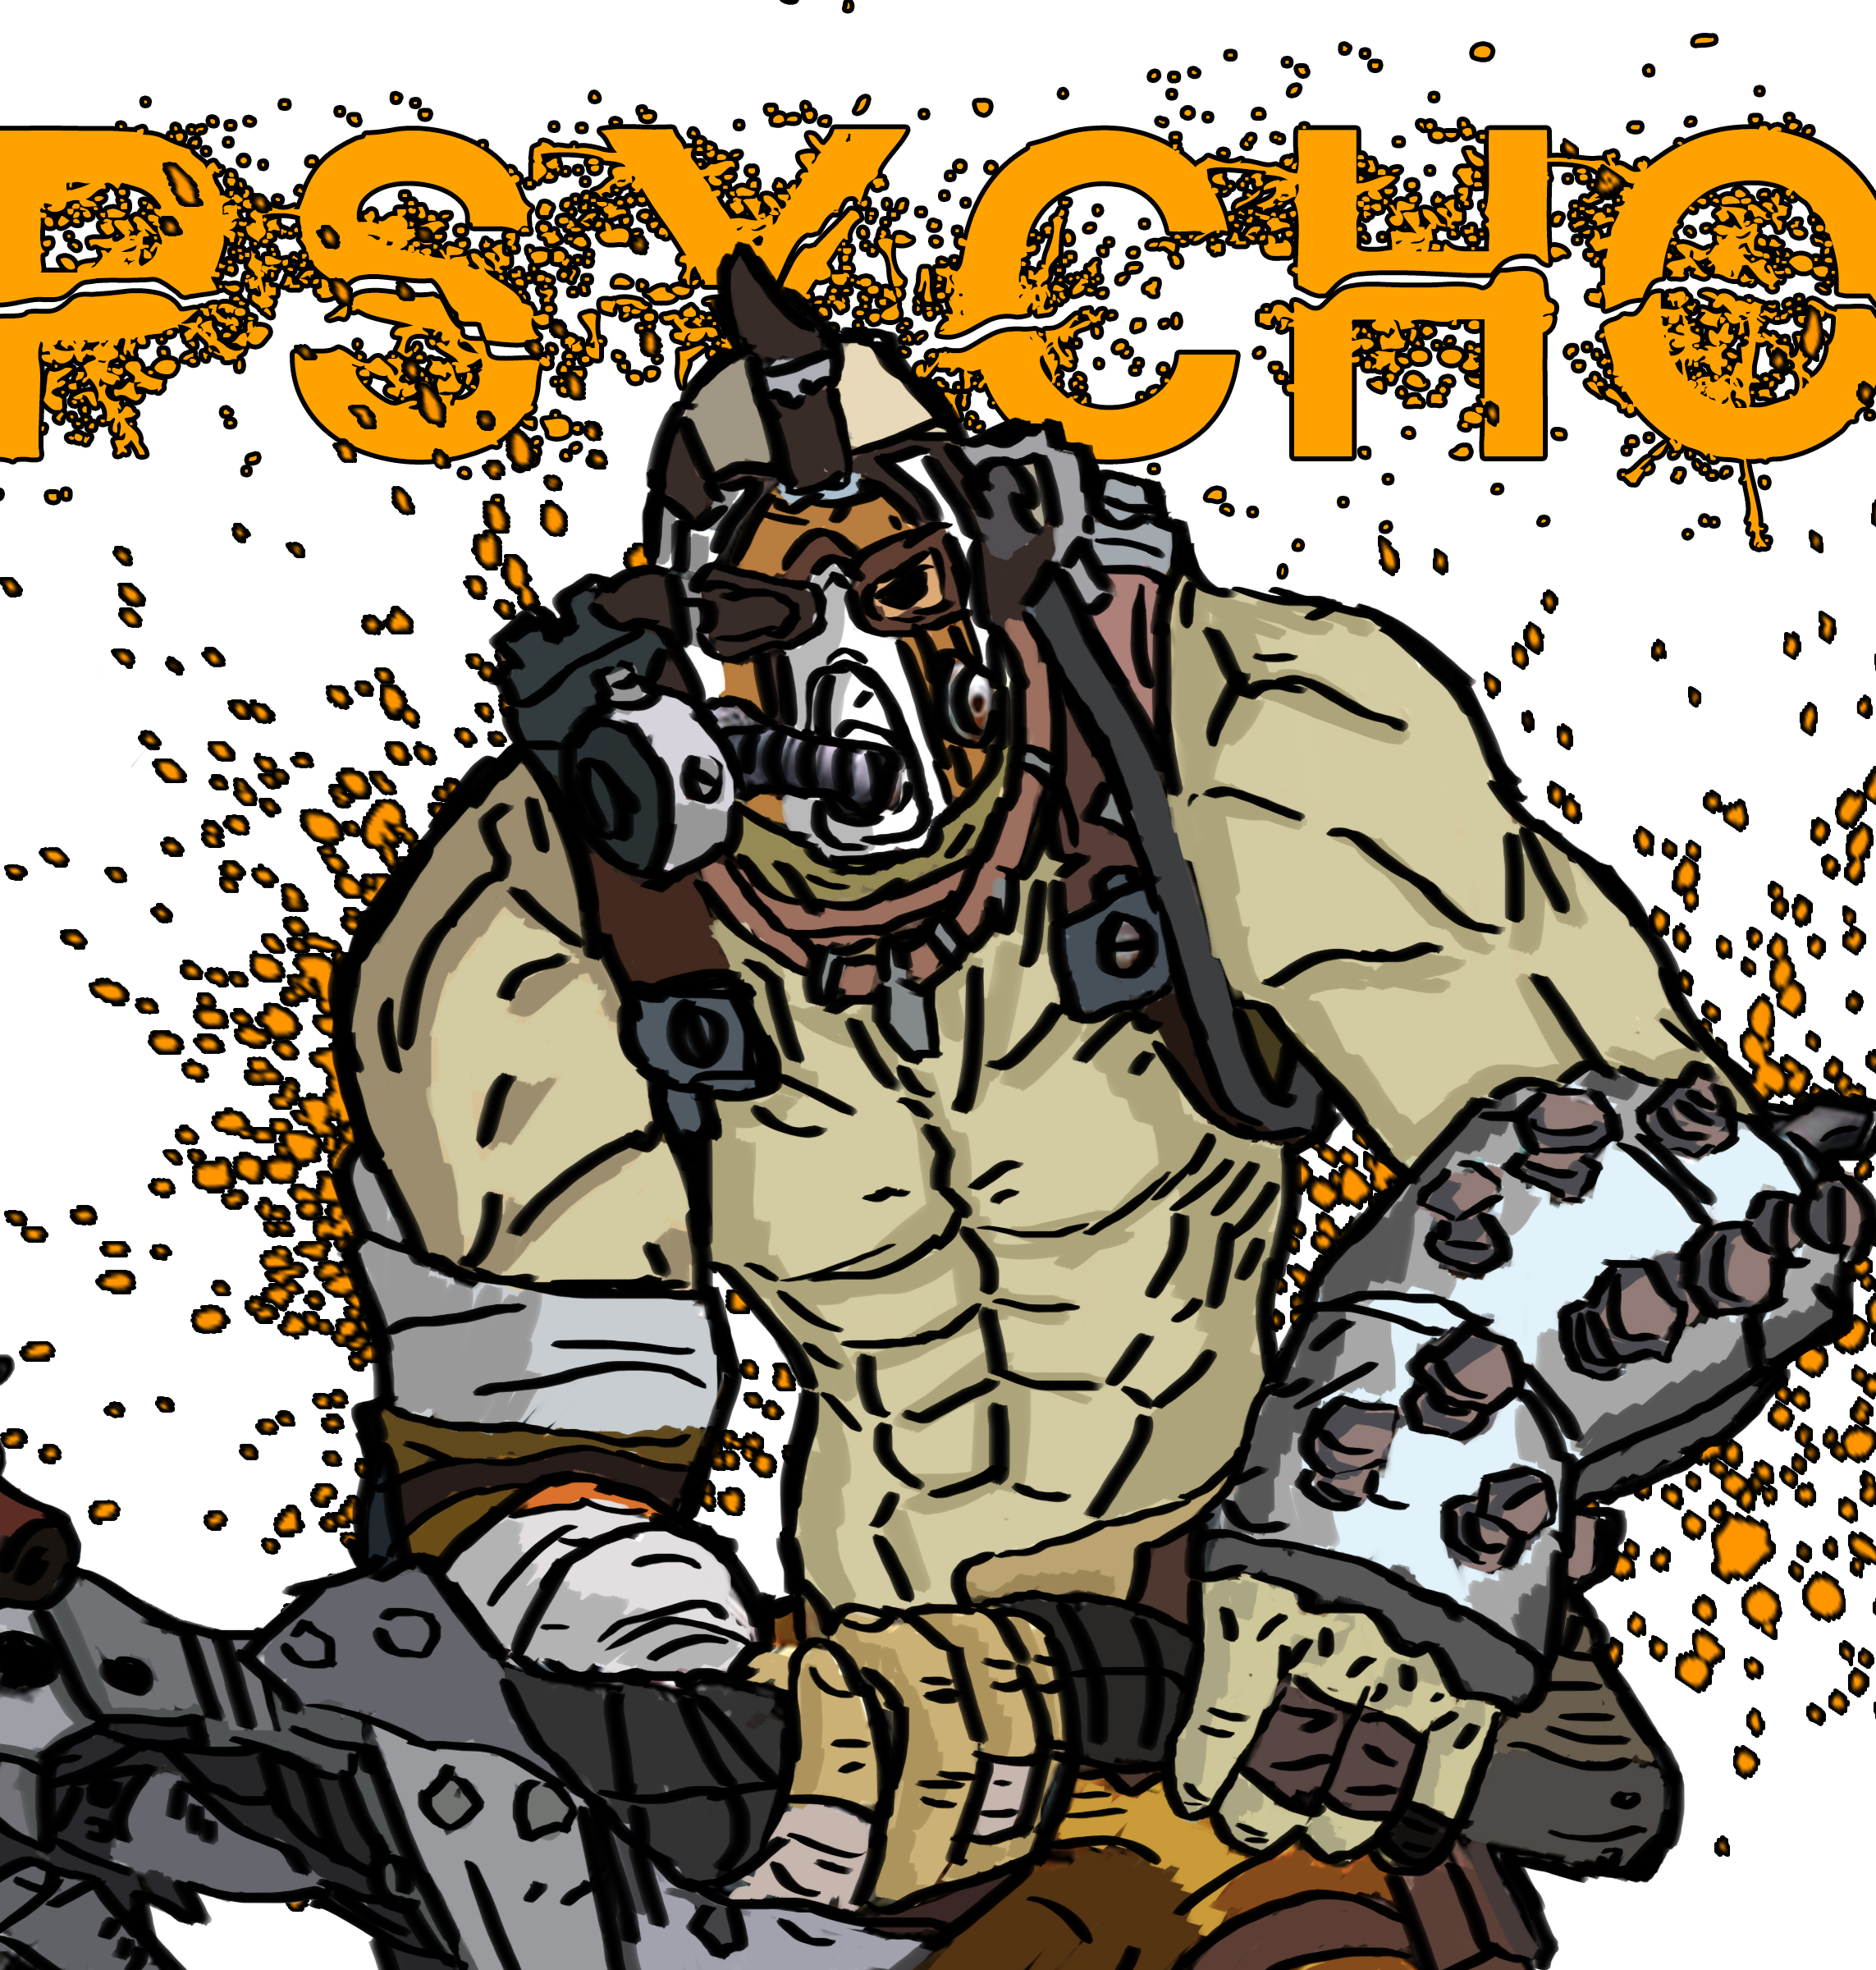 Krieg The Psycho Borderlands 2 Wallpaper By: Krieg The Psycho, Borderlands 2 By Jackobaggy On DeviantArt